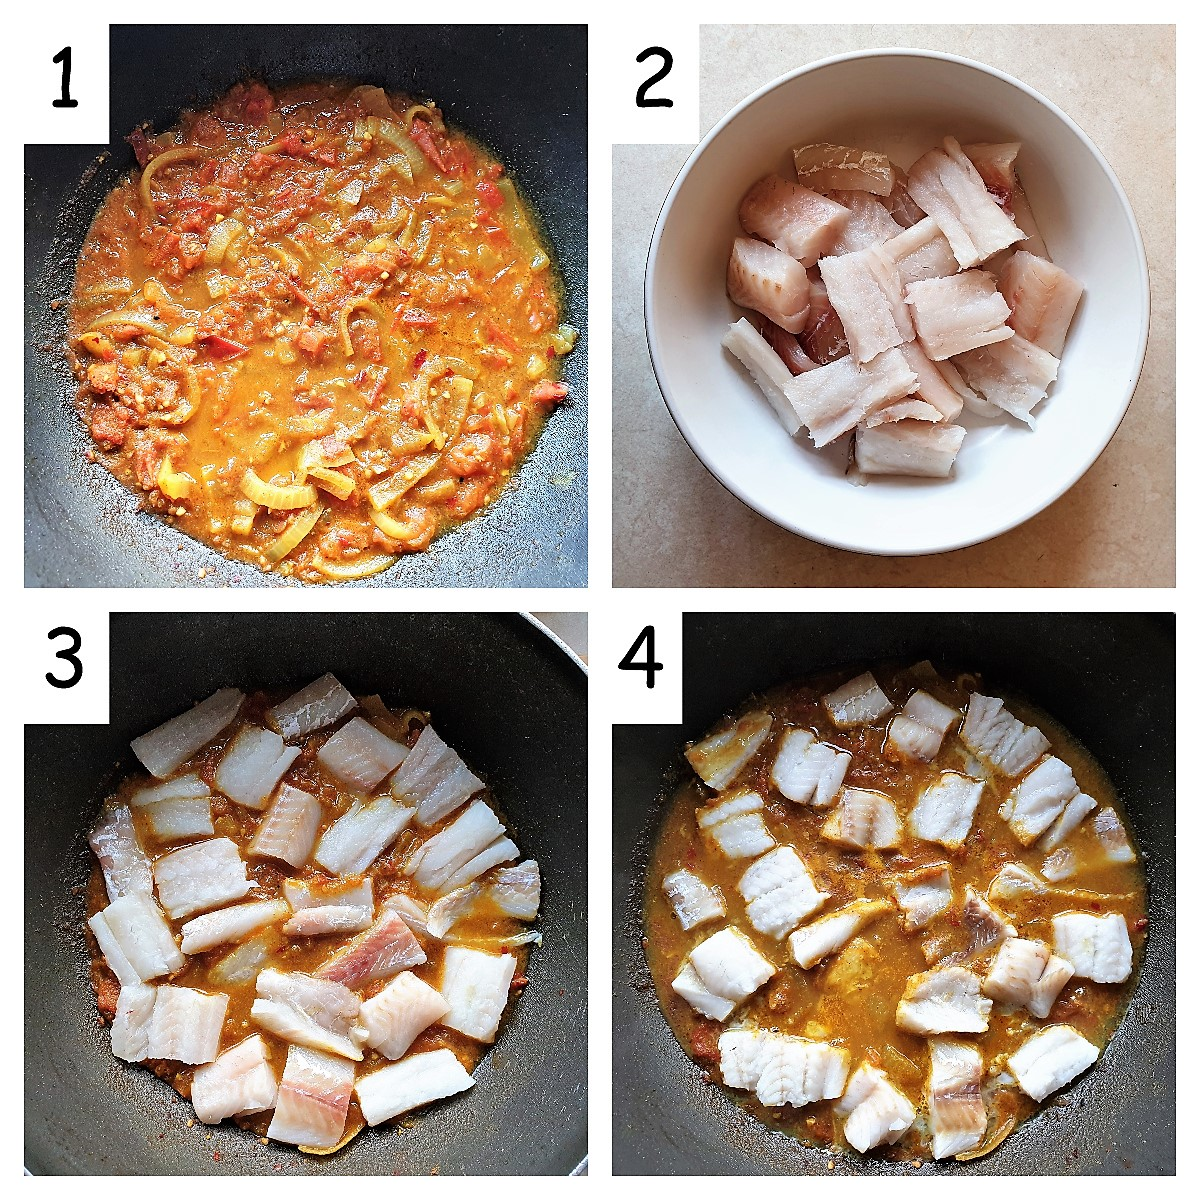 A collage of 4 images showing steps to cook the fish in a curry sauce.